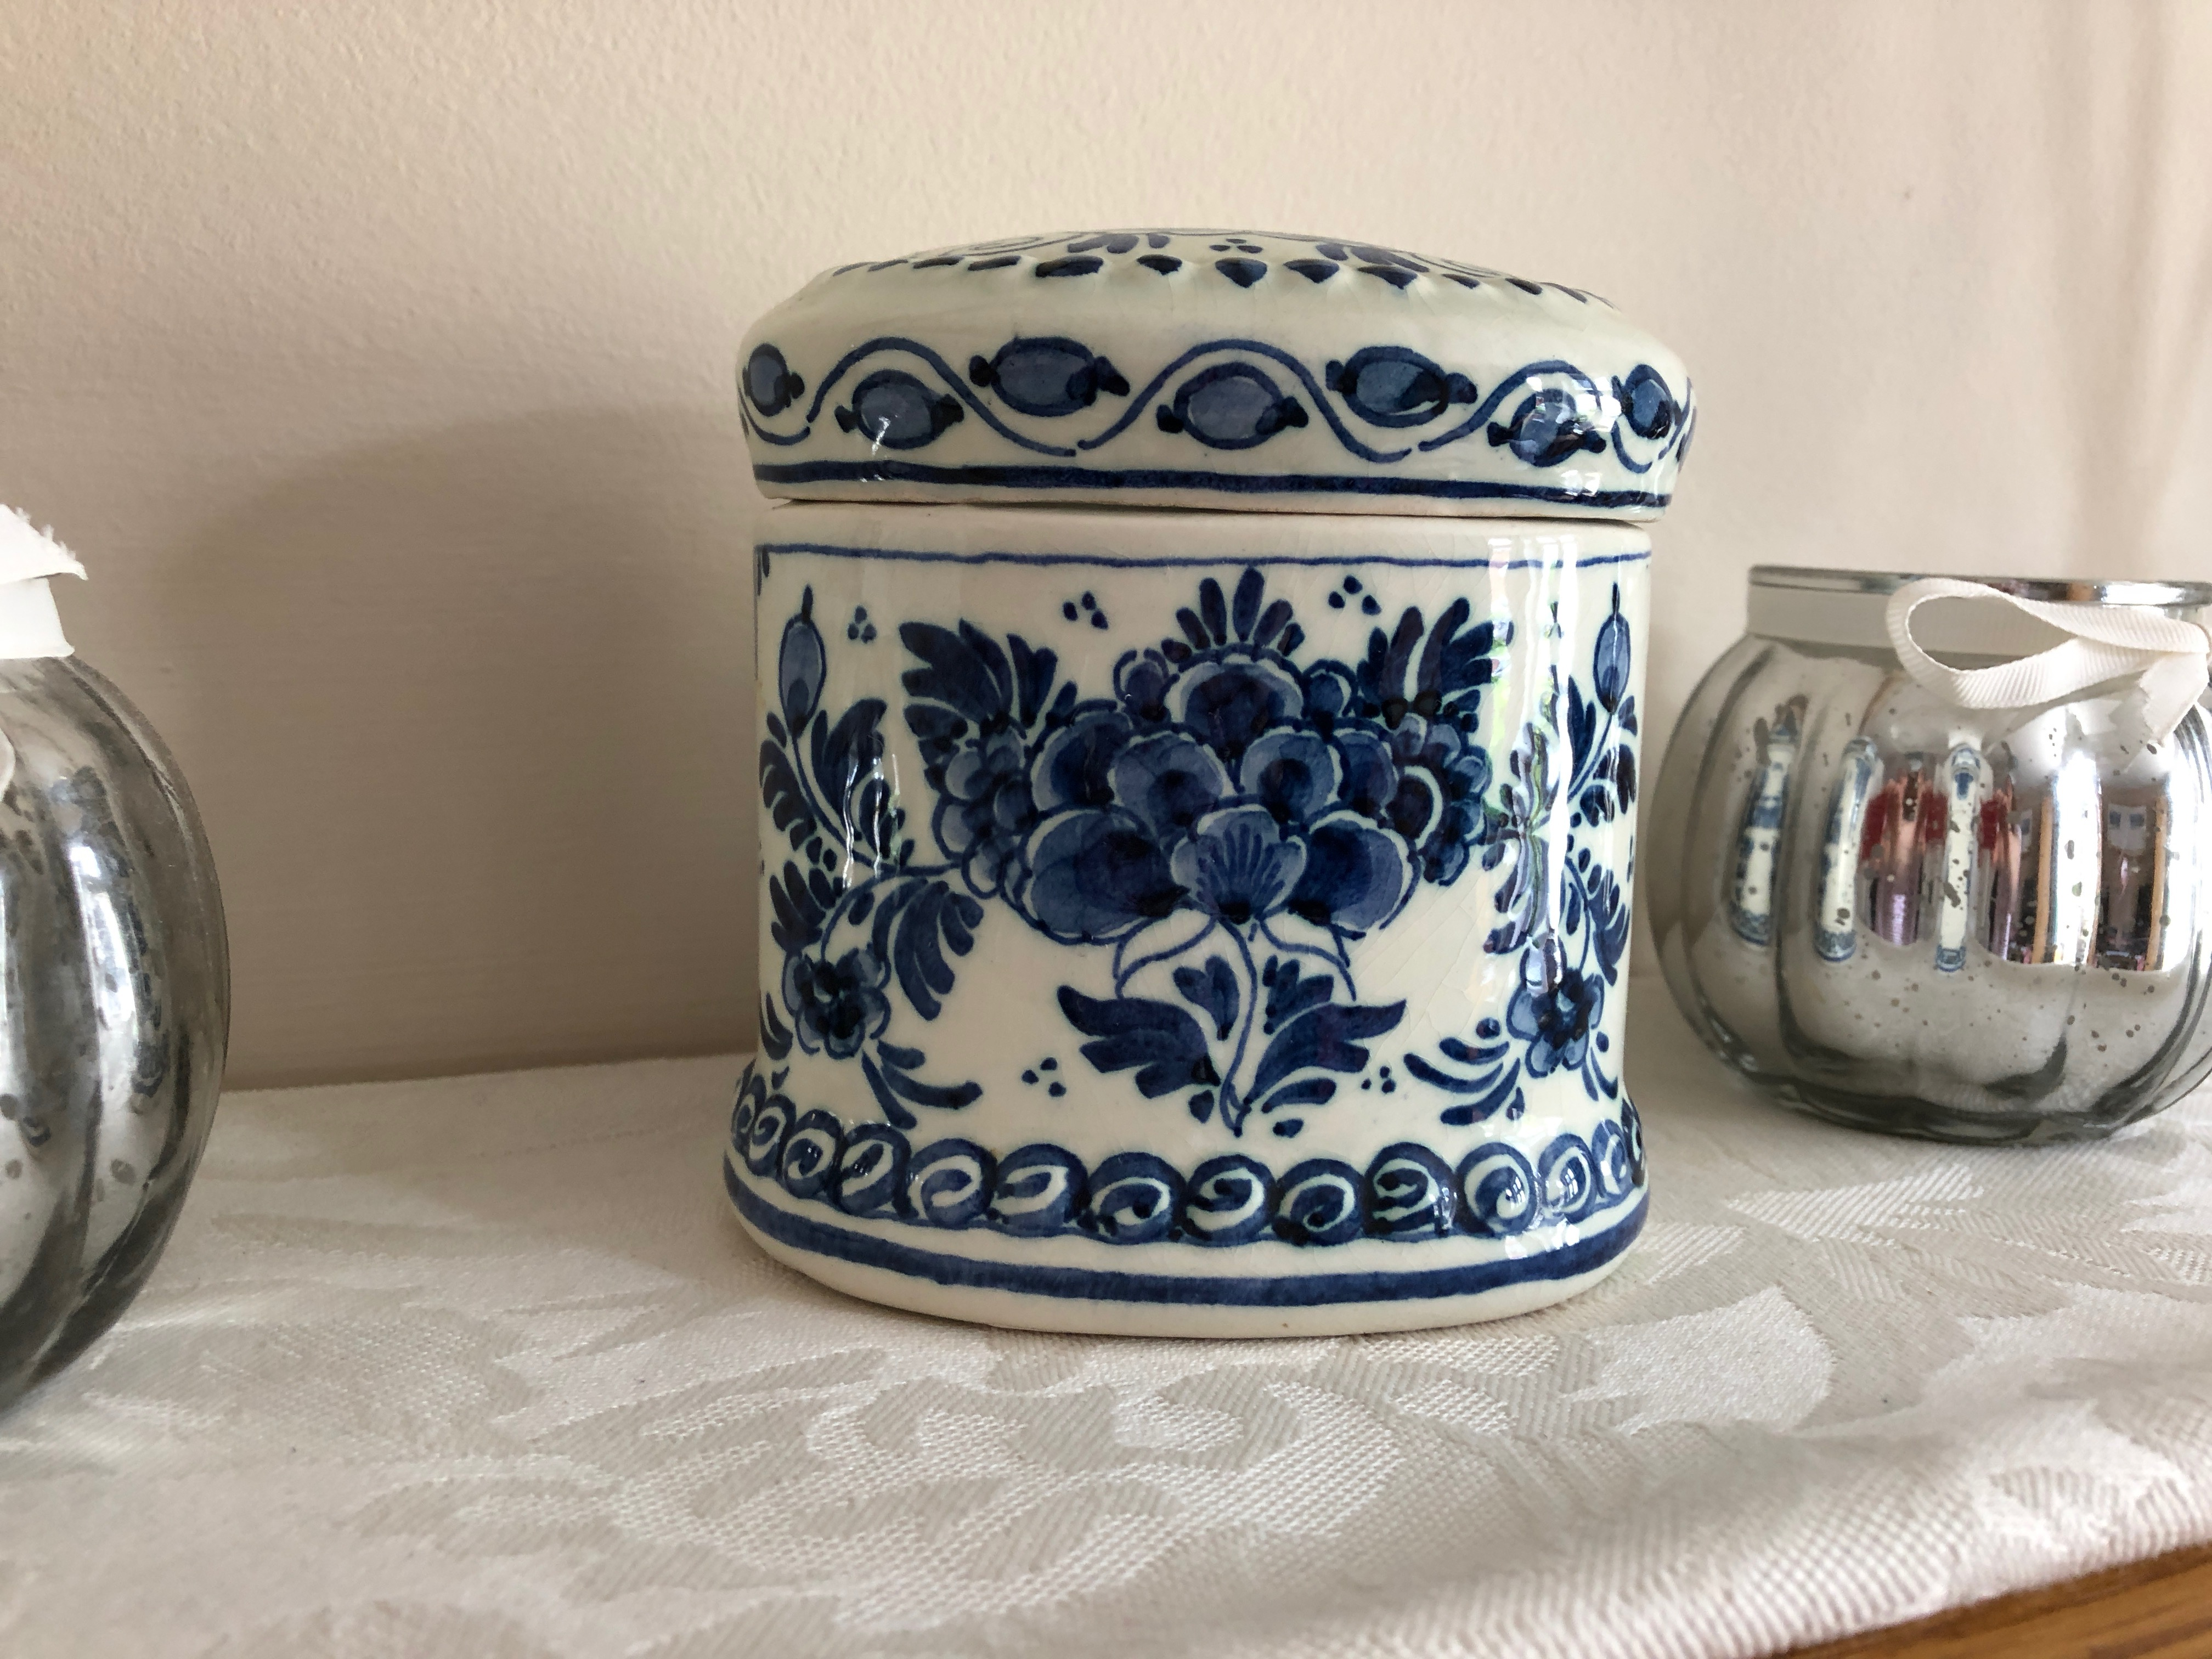 A wonderful little blue and white ceramic trinket box I picked up at a car boot sale. I love the colours and pattern. I think it could be inspiration to me for a new creation.